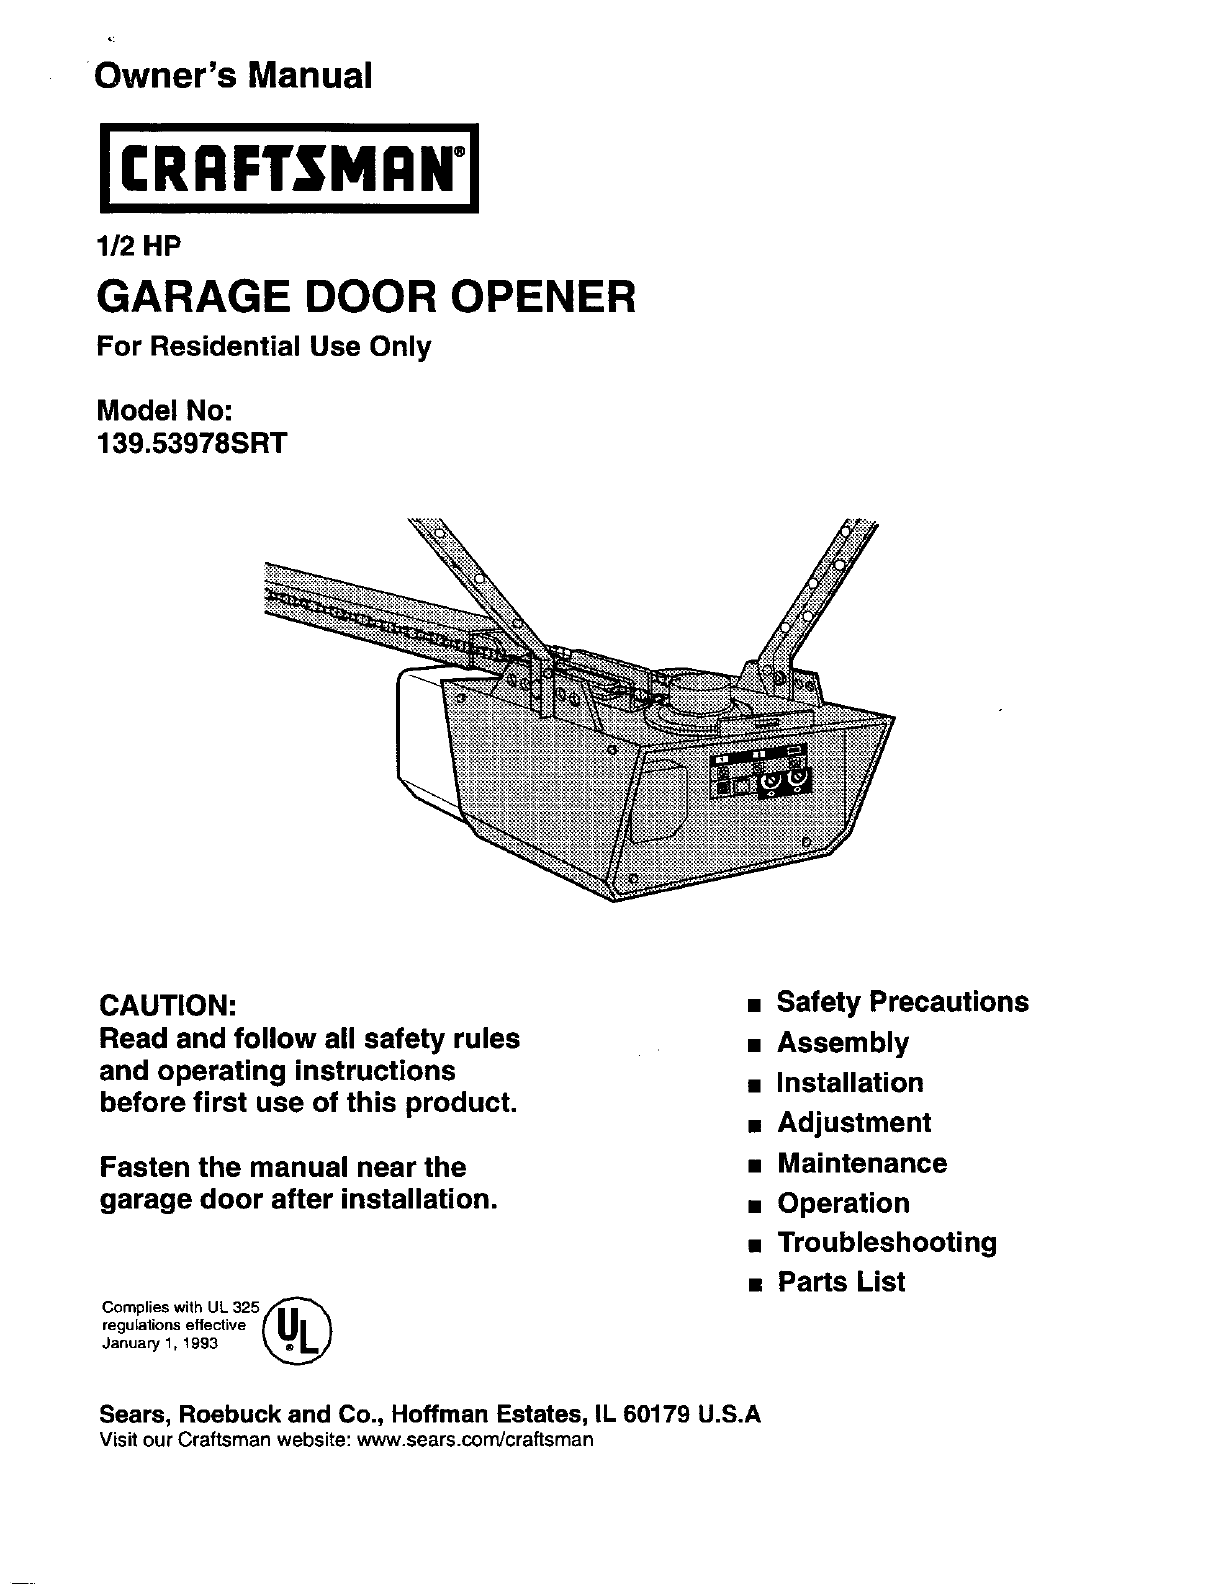 0f05b938 d0cb 4872 aeee 96ef63eab4f3 bg1 craftsman garage door opener 139 53978srt user guide craftsman garage door sensor wiring diagram at n-0.co